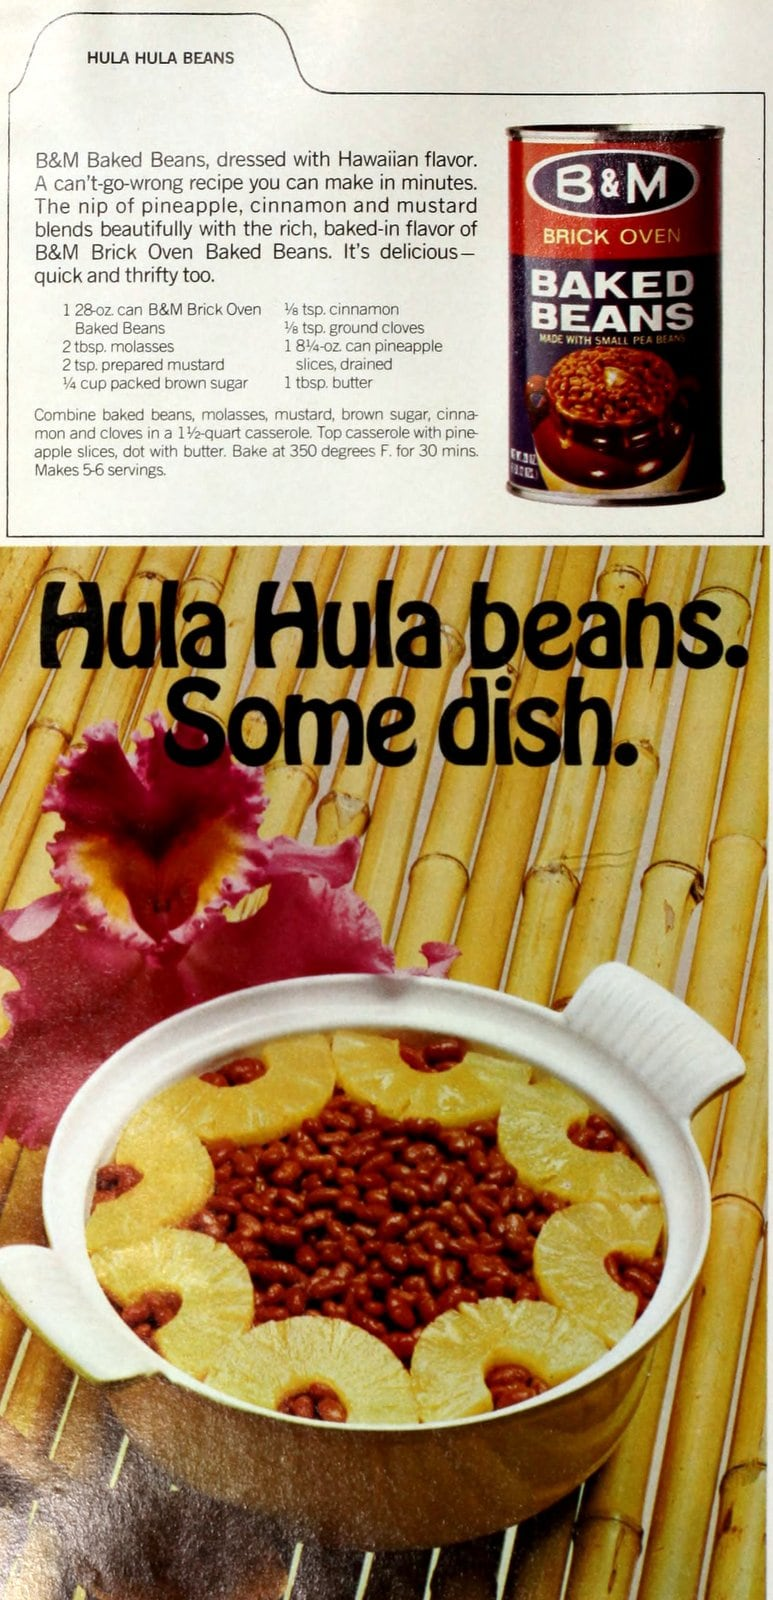 Hula Hula beans recipe - Baked beans with pineapple (1970)